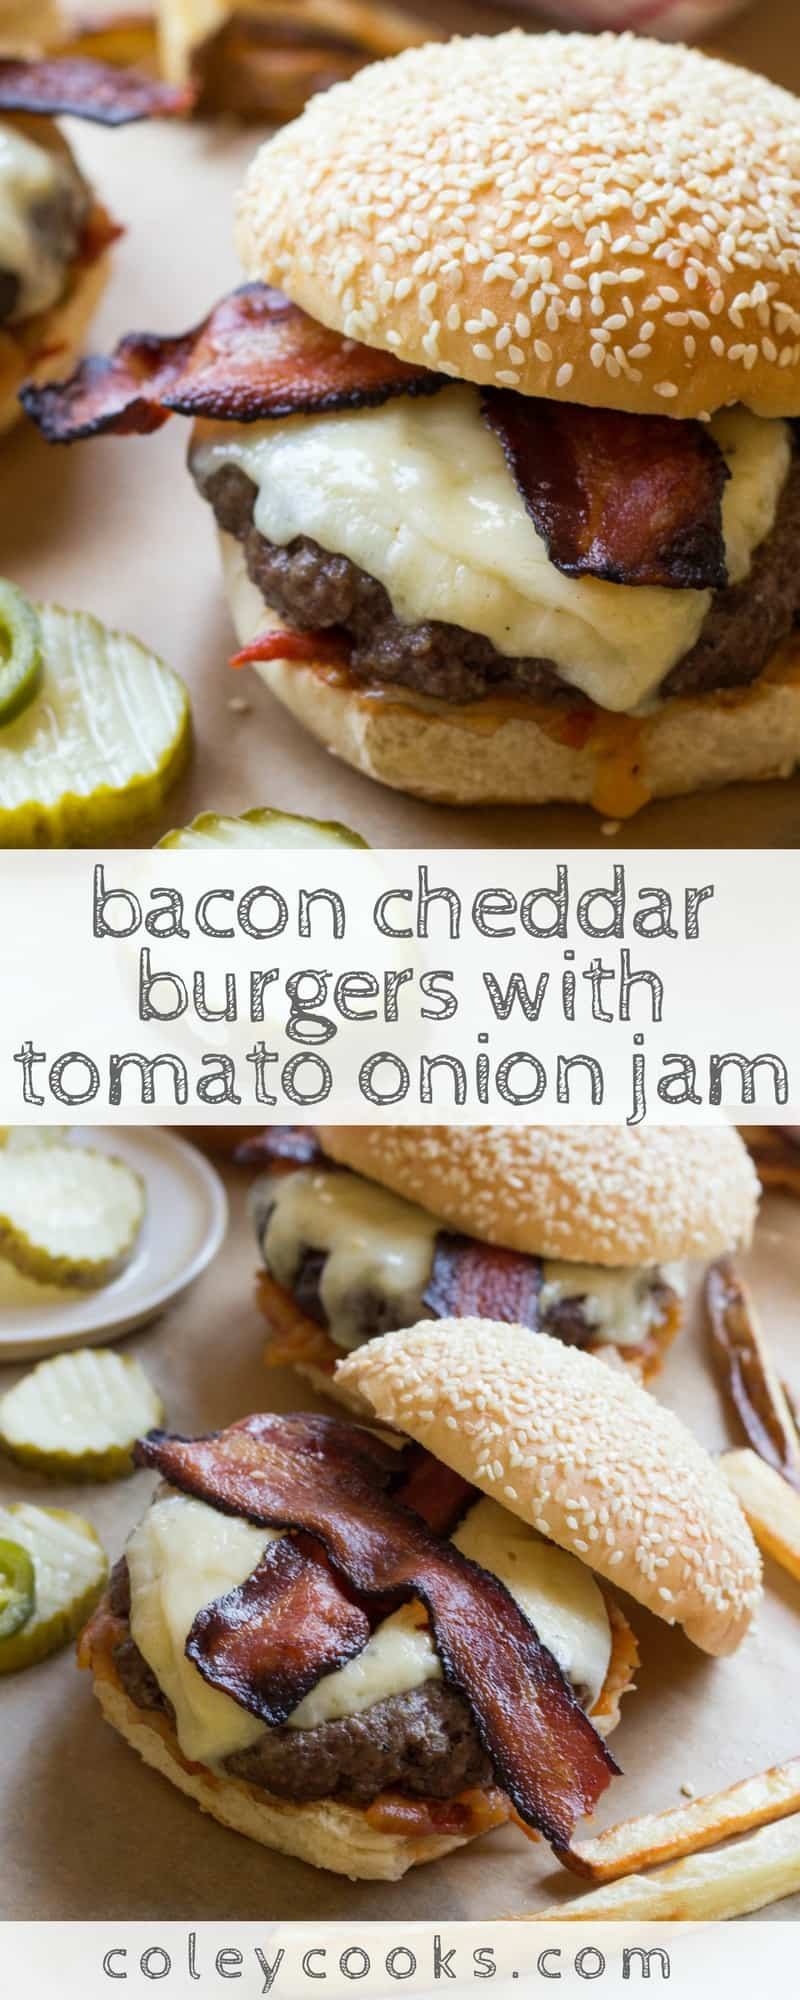 BACON CHEDDAR BURGERS with TOMATO ONION JAM   The best cheeseburgers ever! Smoky bacon, melted sharp cheddar, tangy tomato onion jam - perfection. #burgers #tomatoes   ColeyCooks.com